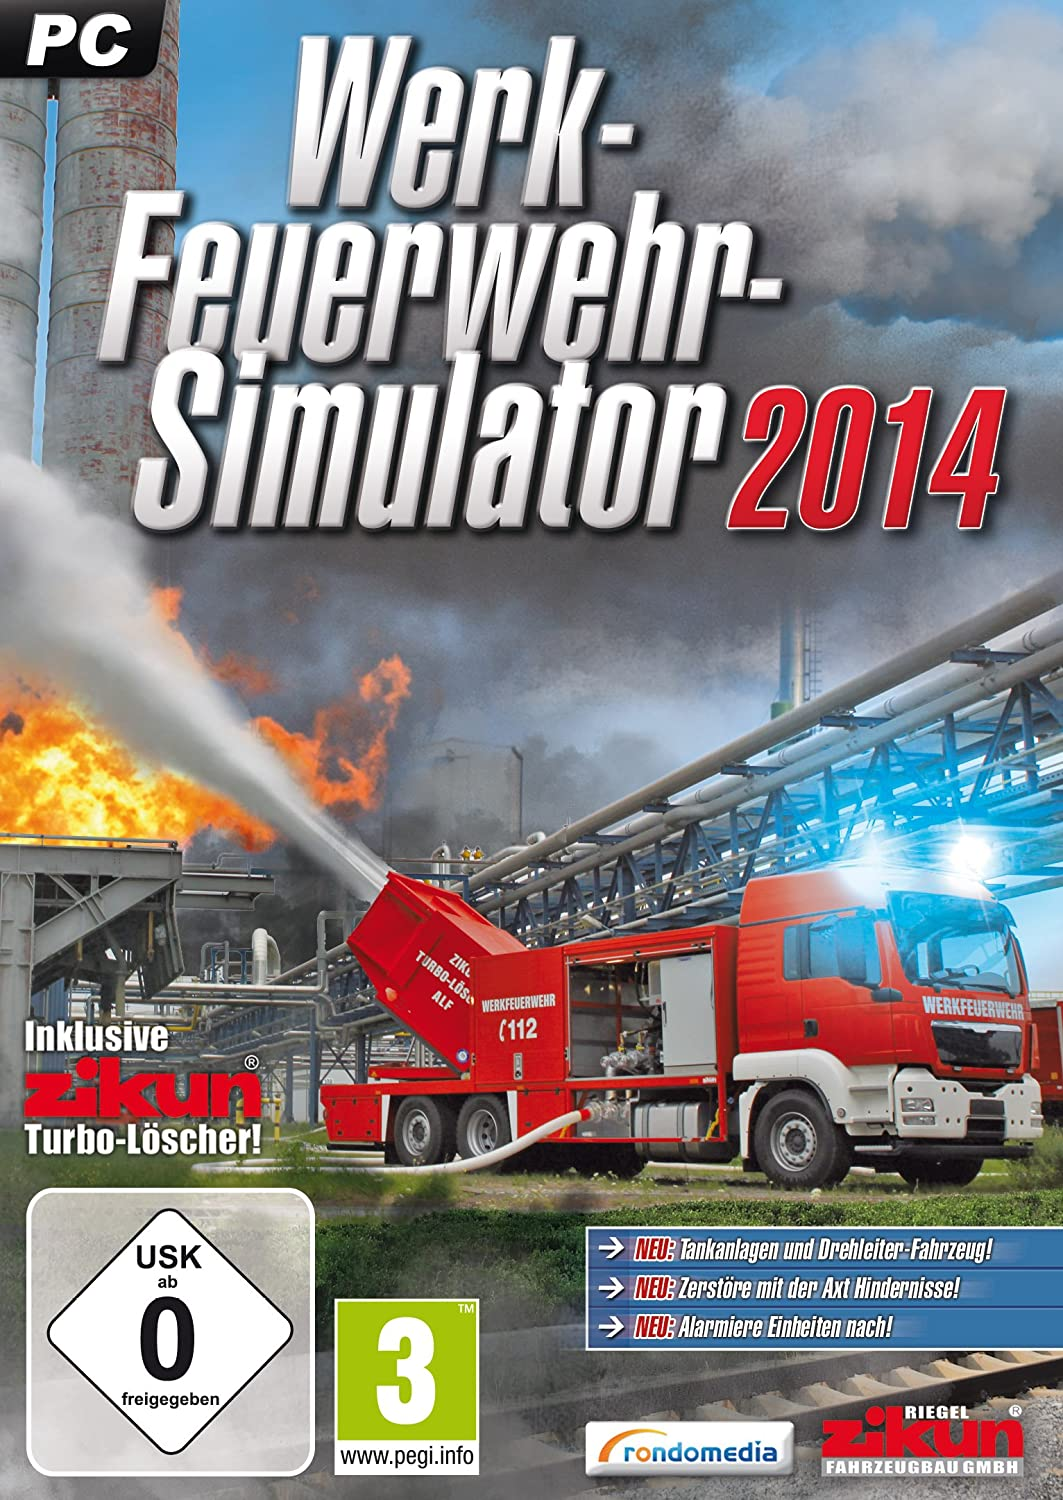 Werkfeuerwehr-Simulator 2014: PC: Amazon.de: Games